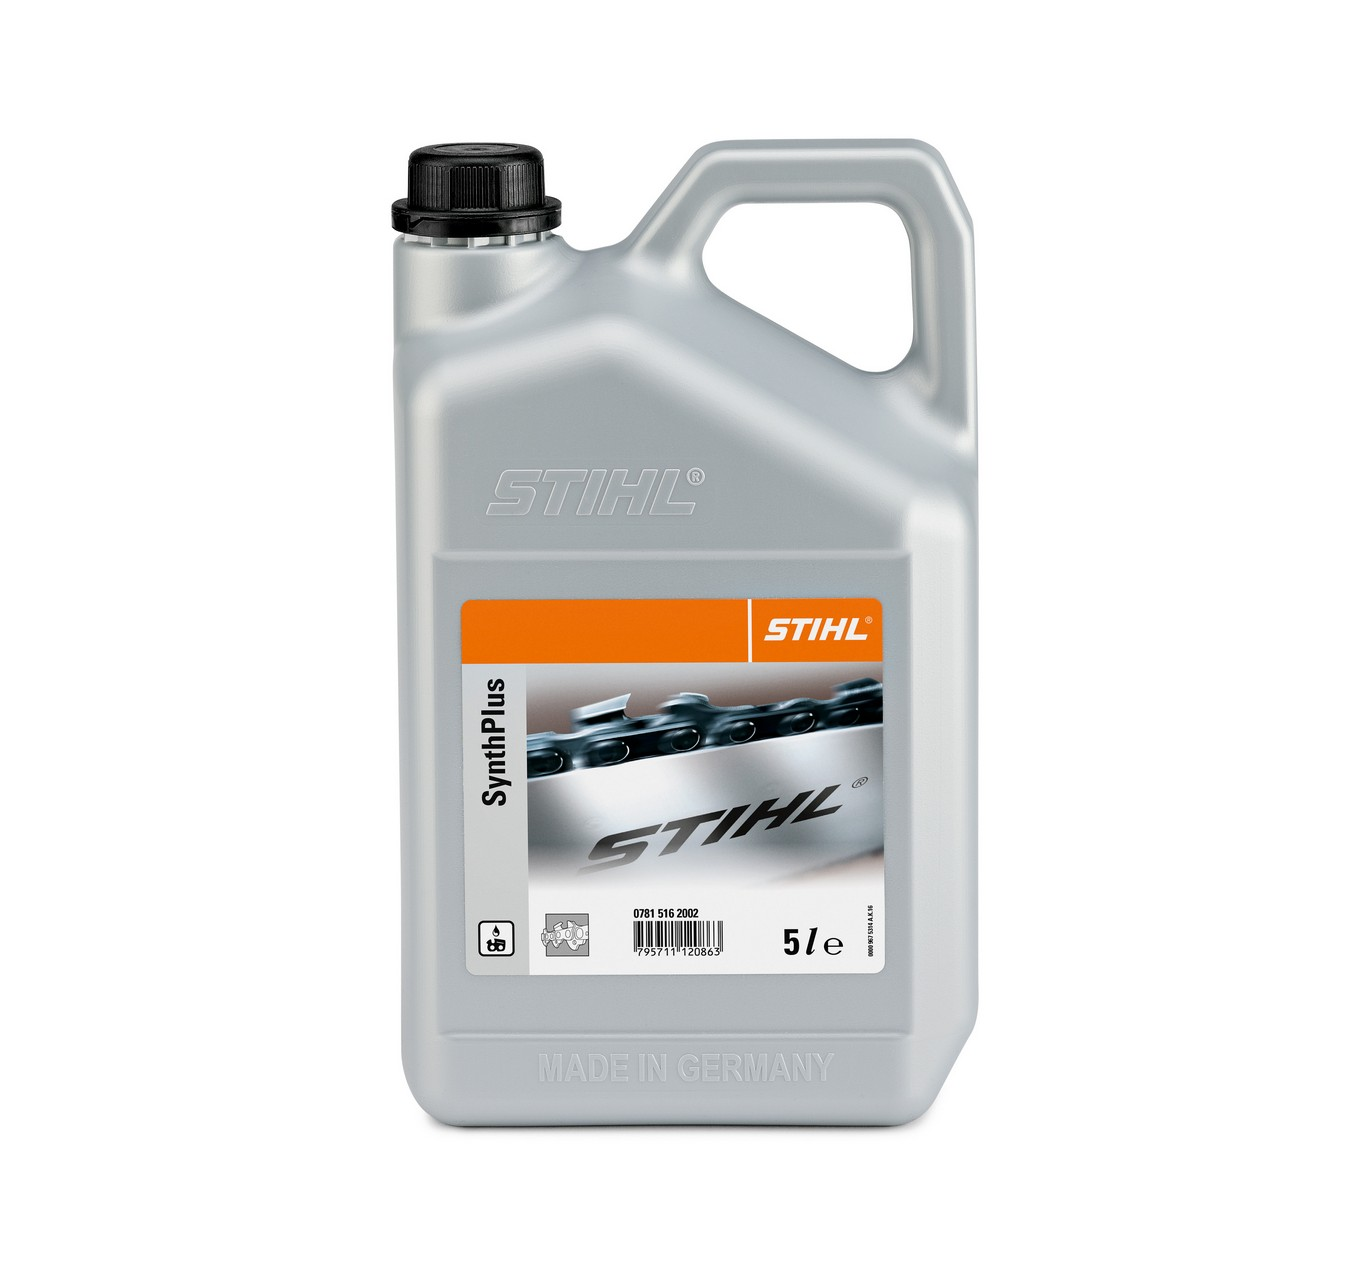 SynthPlus Chain Oil 5L